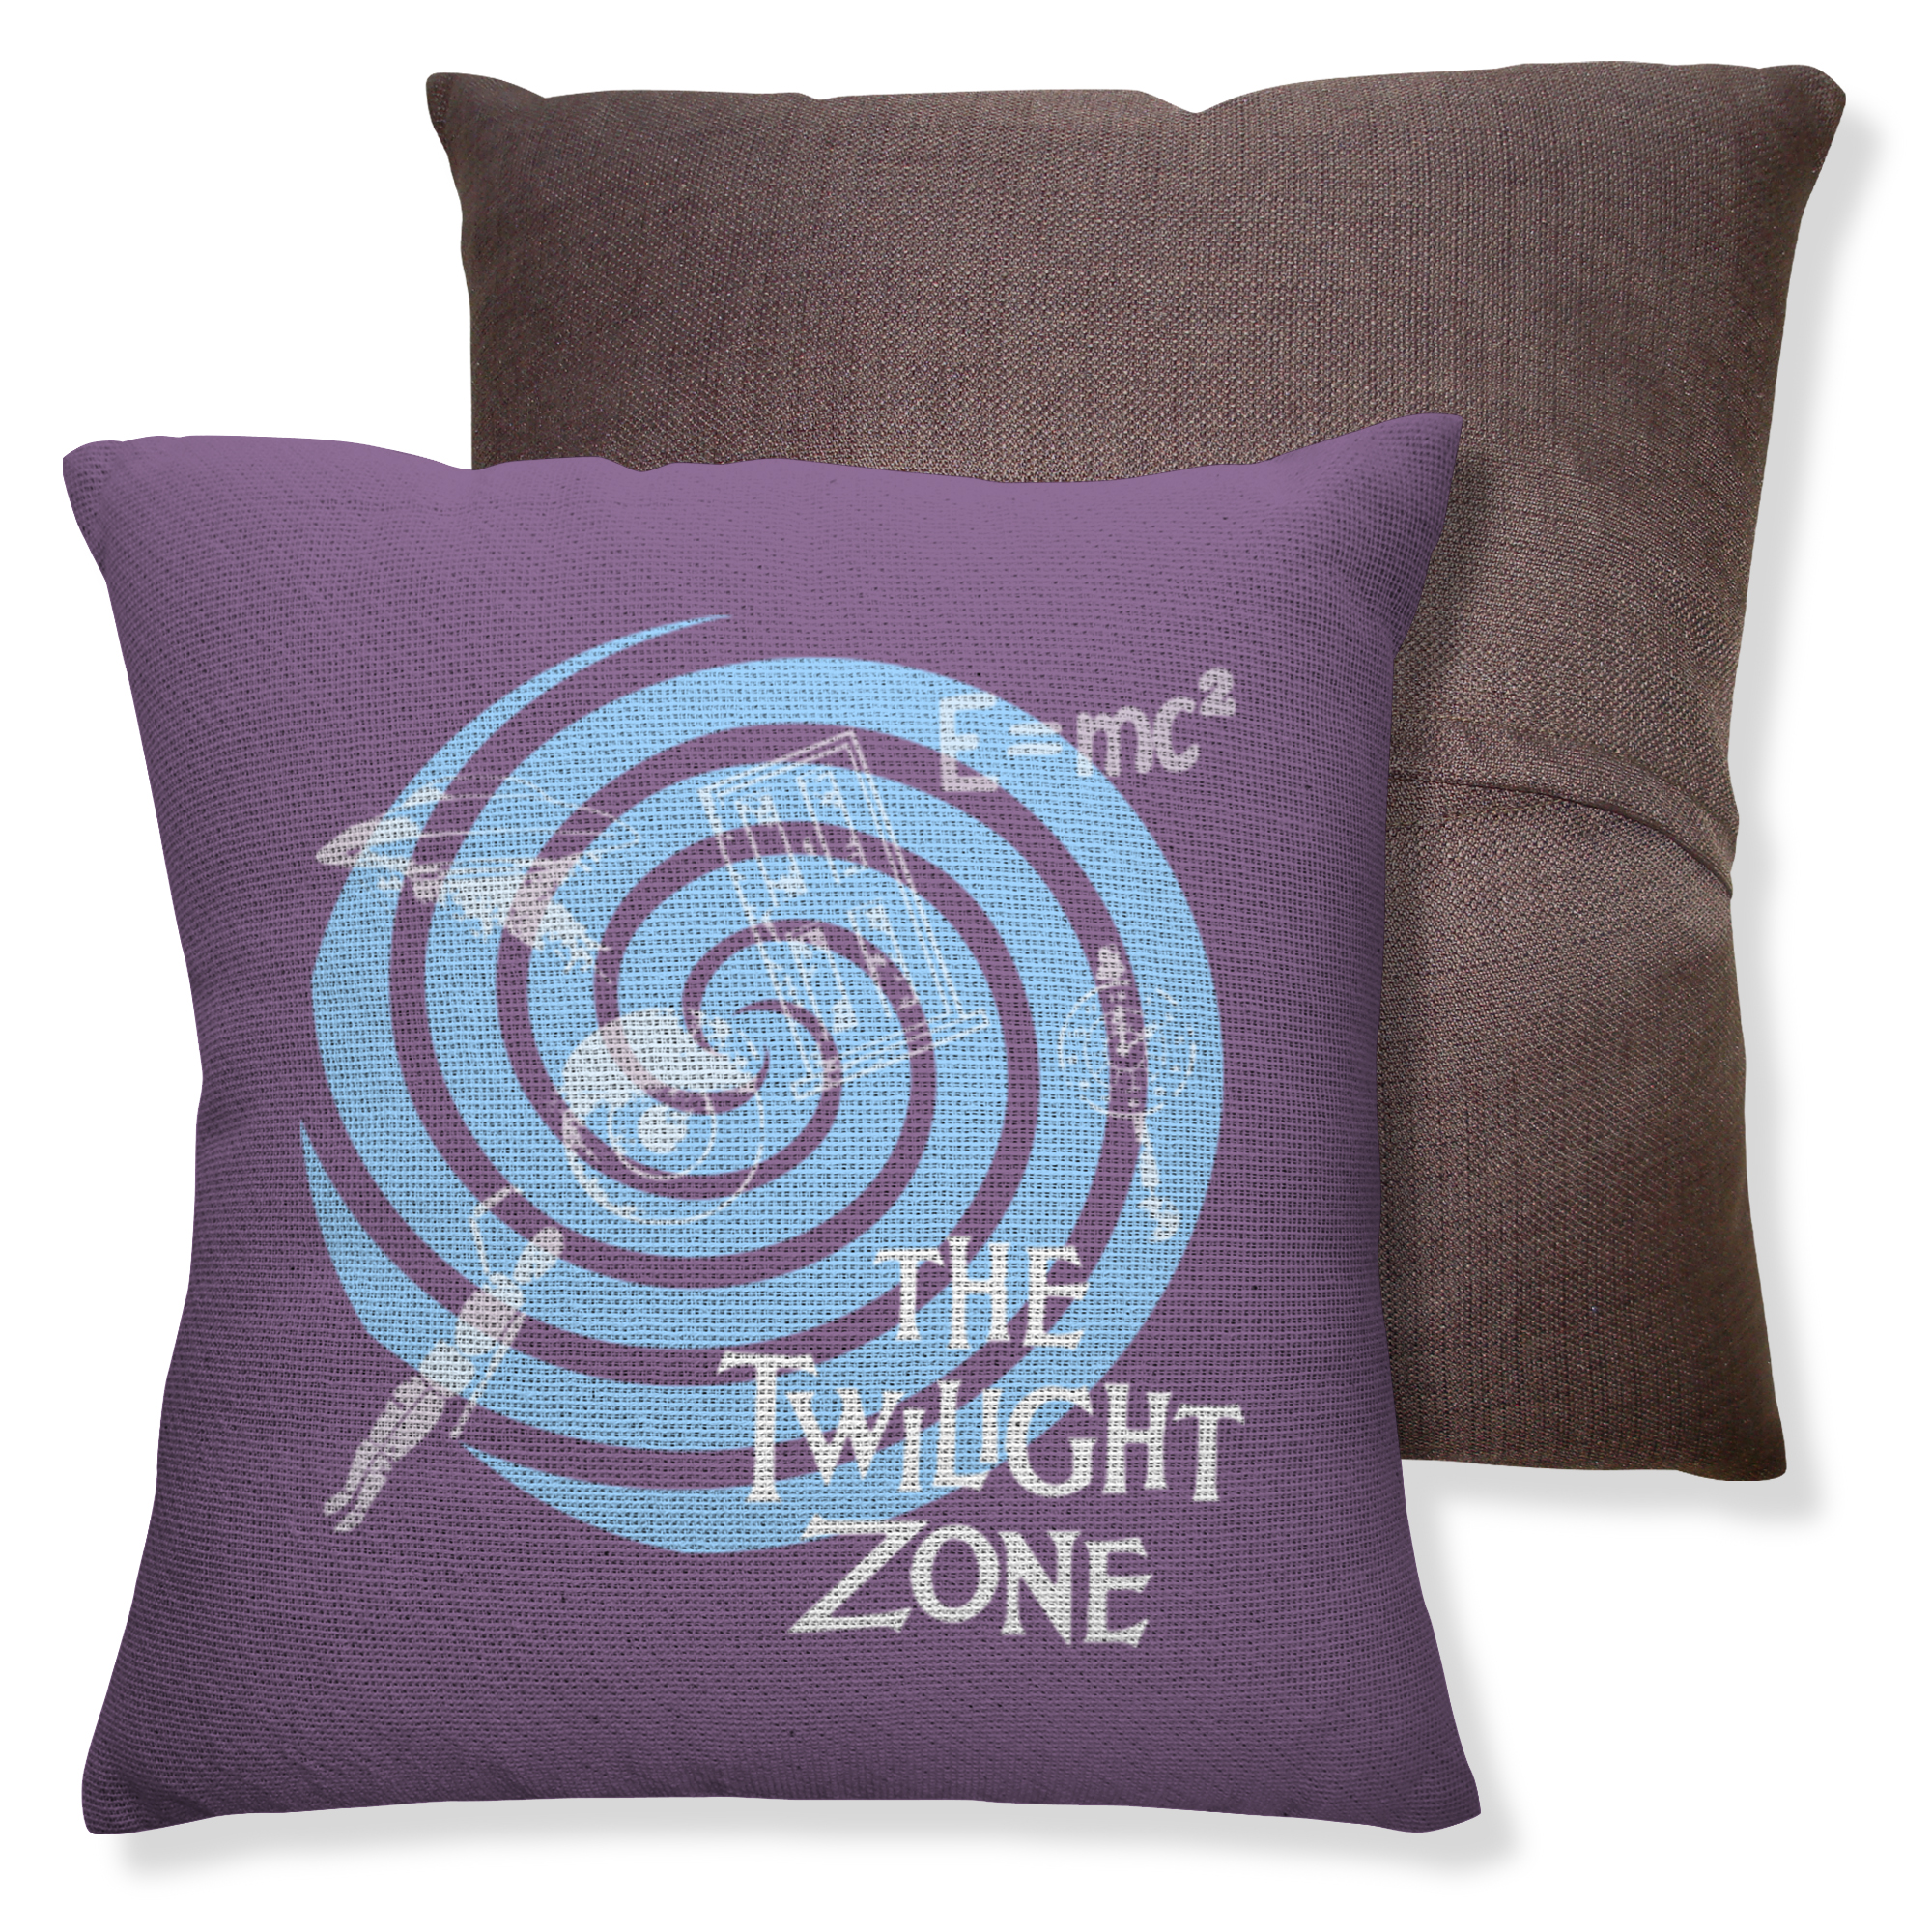 The Twilight Zone Spiral Throw Pillow